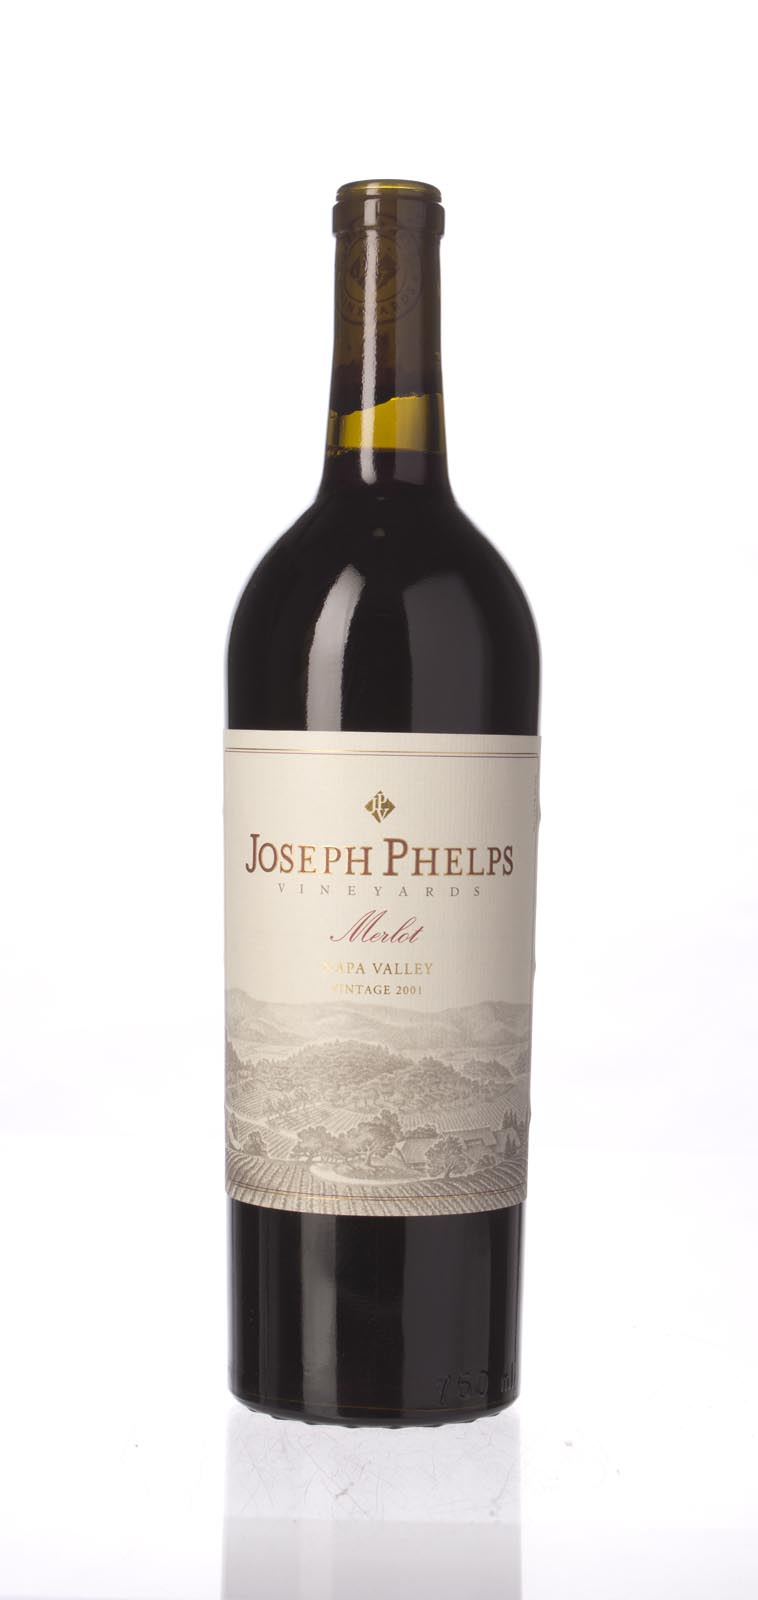 Joseph Phelps Merlot Napa Valley 2001, 750mL () from The BPW - Merchants of rare and fine wines.